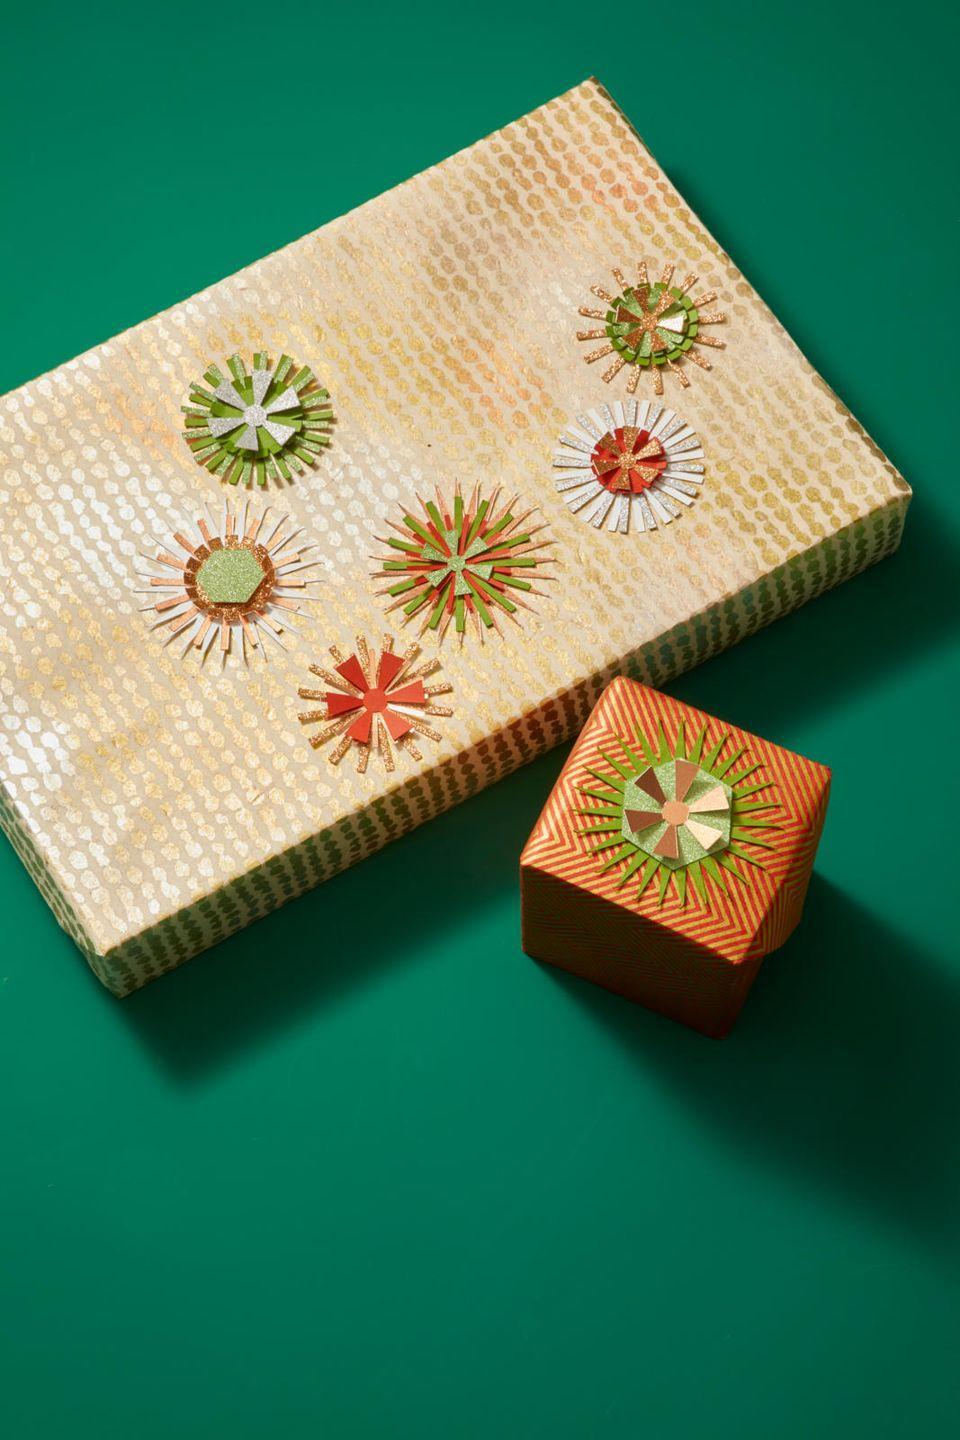 """<p>Once you've made your candles, you can also use the Cricut's starburst template to cut out interesting shapes in a mix of papers. Layer them to make eye-catching gift toppers, and secure them with <a href=""""https://www.amazon.com/Glue-Dots-Contains-Adhesive-08165/dp/B0011N832C?tag=syn-yahoo-20&ascsubtag=%5Bartid%7C10055.g.2996%5Bsrc%7Cyahoo-us"""" rel=""""nofollow noopener"""" target=""""_blank"""" data-ylk=""""slk:glue dots"""" class=""""link rapid-noclick-resp"""">glue dots</a>. Your recipients will be so into it, they'll forget to shake the present and try and figure out what's inside. </p>"""